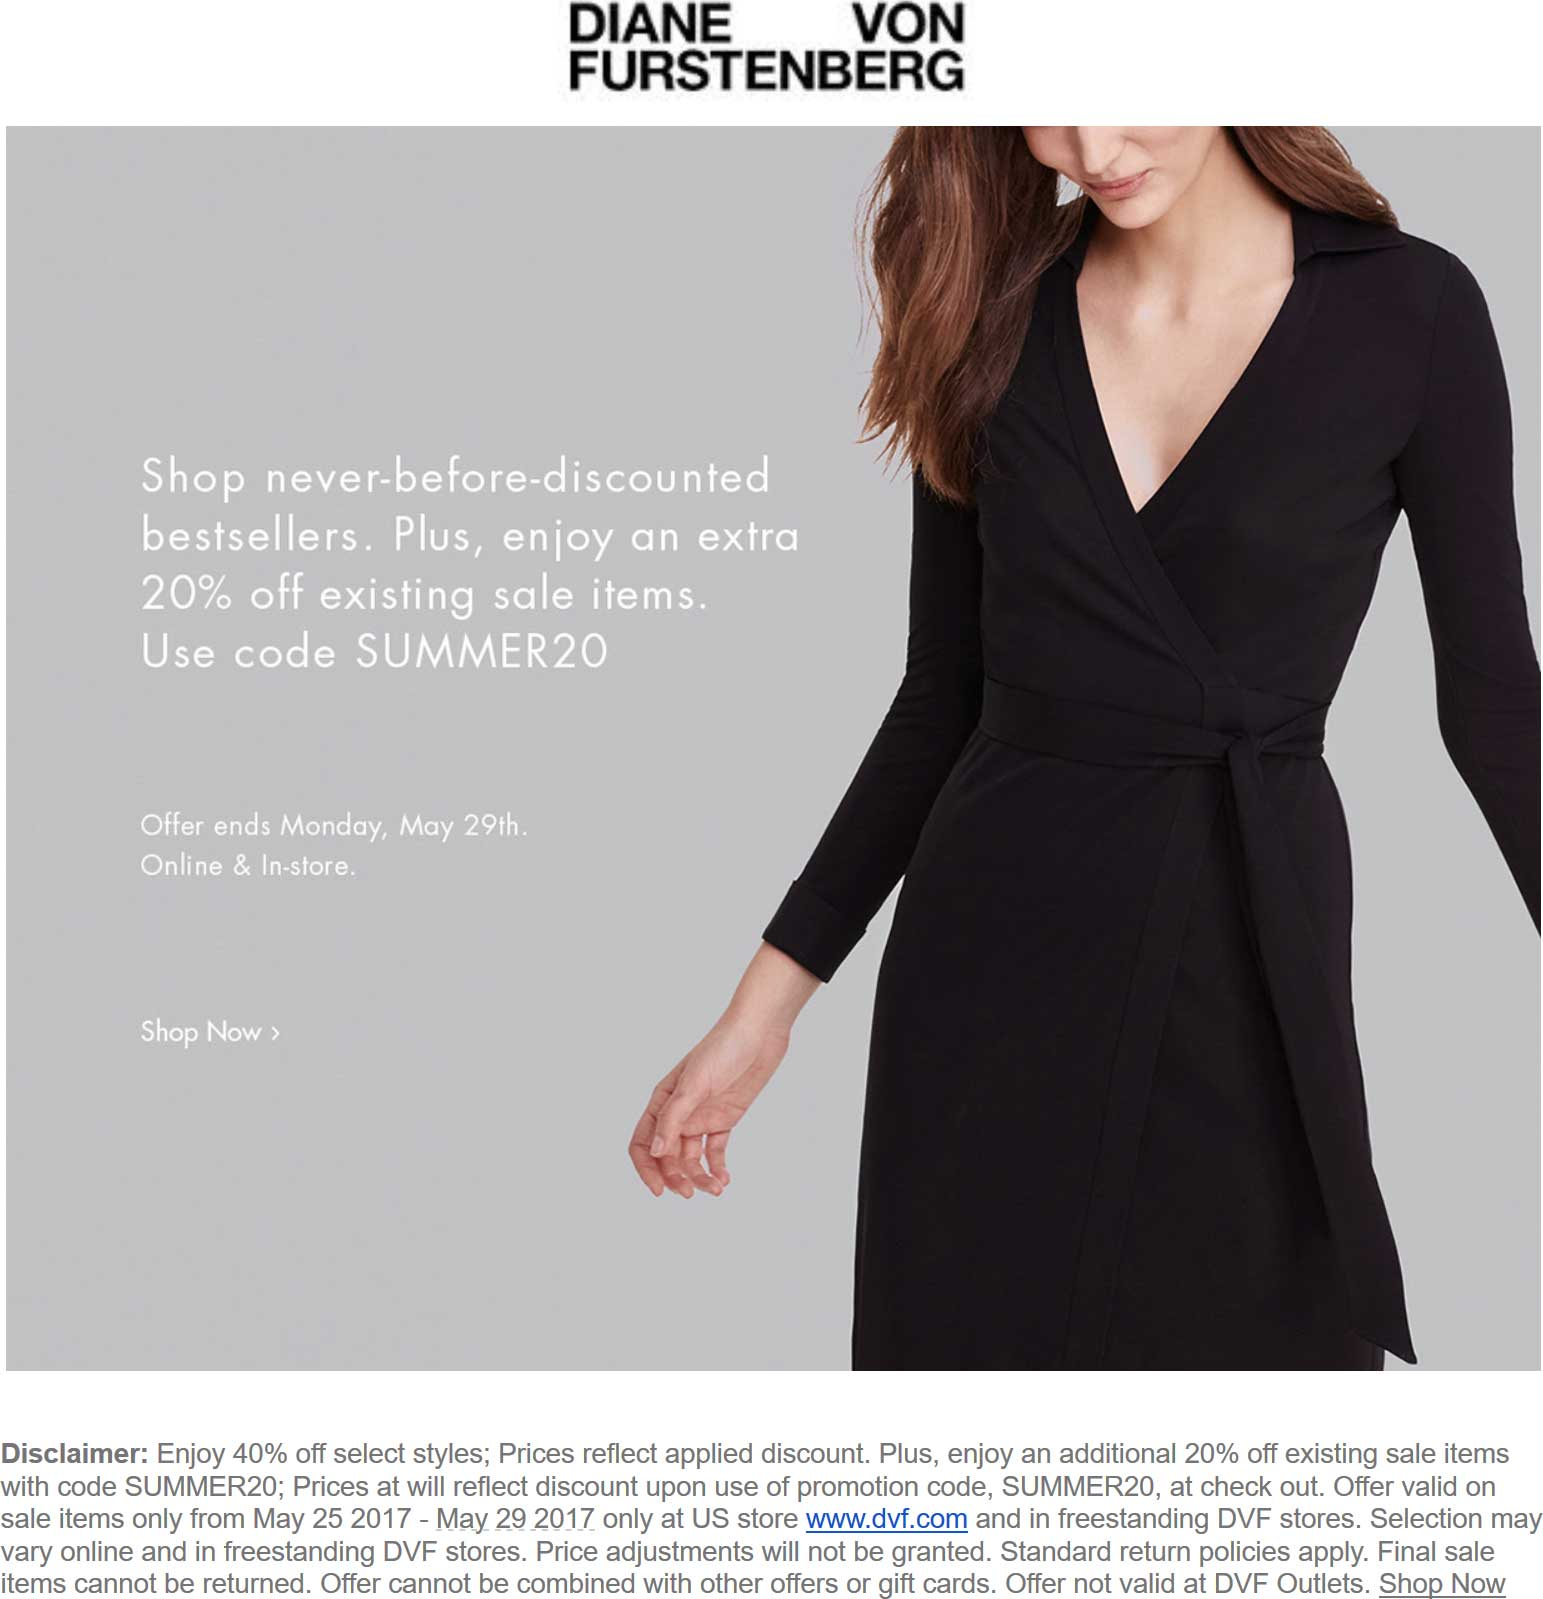 Diane Von Furstenberg Coupon March 2019 Extra 20% off sale items today at DVF, or online via promo code SUMMER20